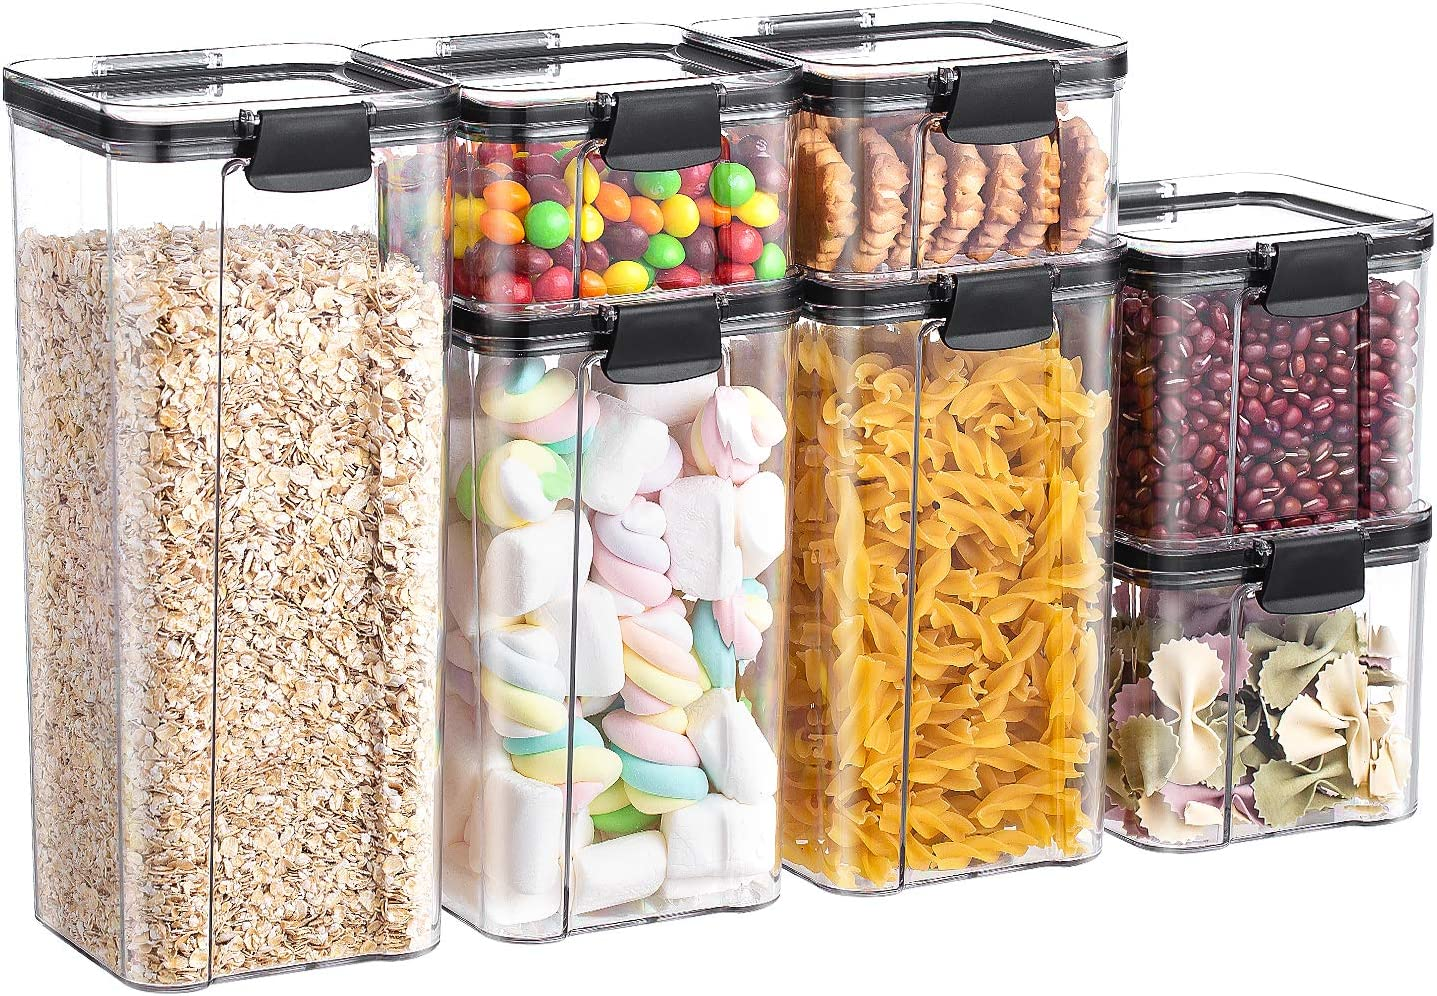 Food Storage Container Set - 7 PC Set, BPA Free, Leak-proof with Black ,Locking Lids Durable Lids Ideal for Cereal, food containers, cereal containers storage set